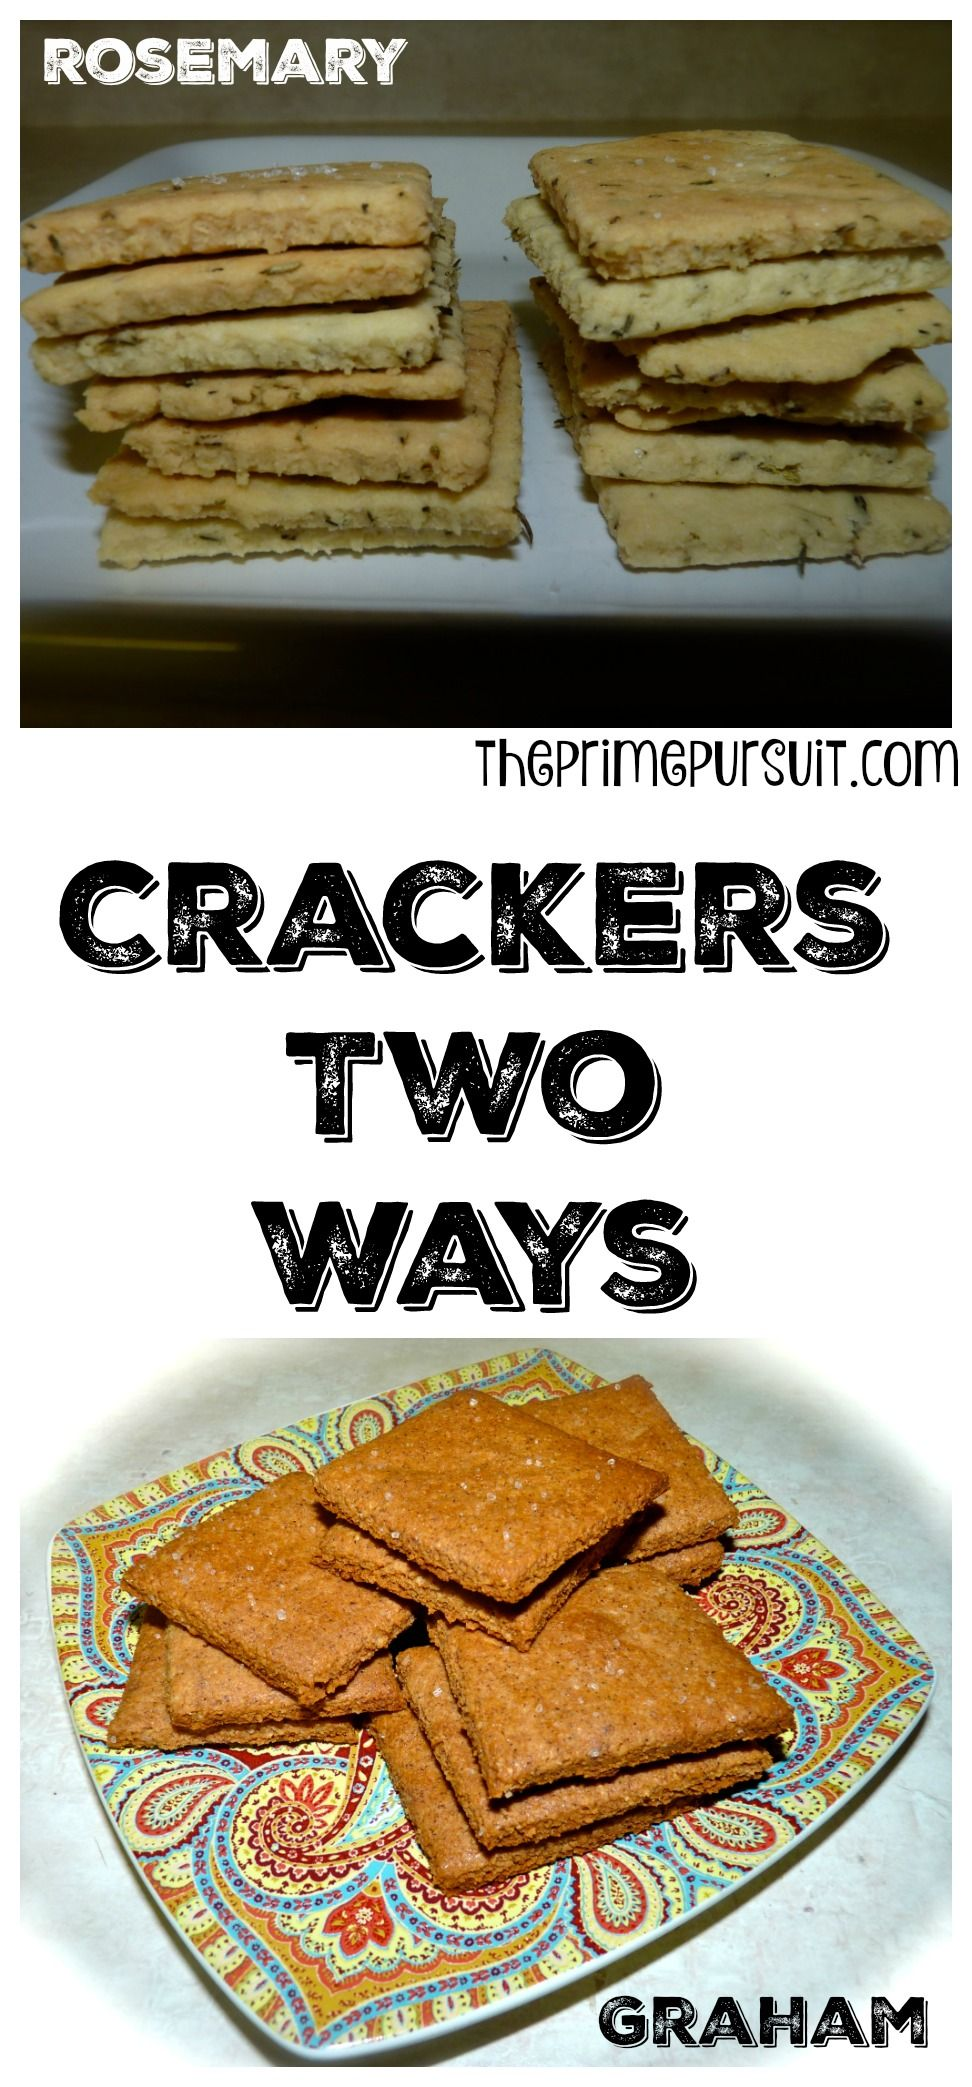 Crackers two ways refined sugar free recipes graham